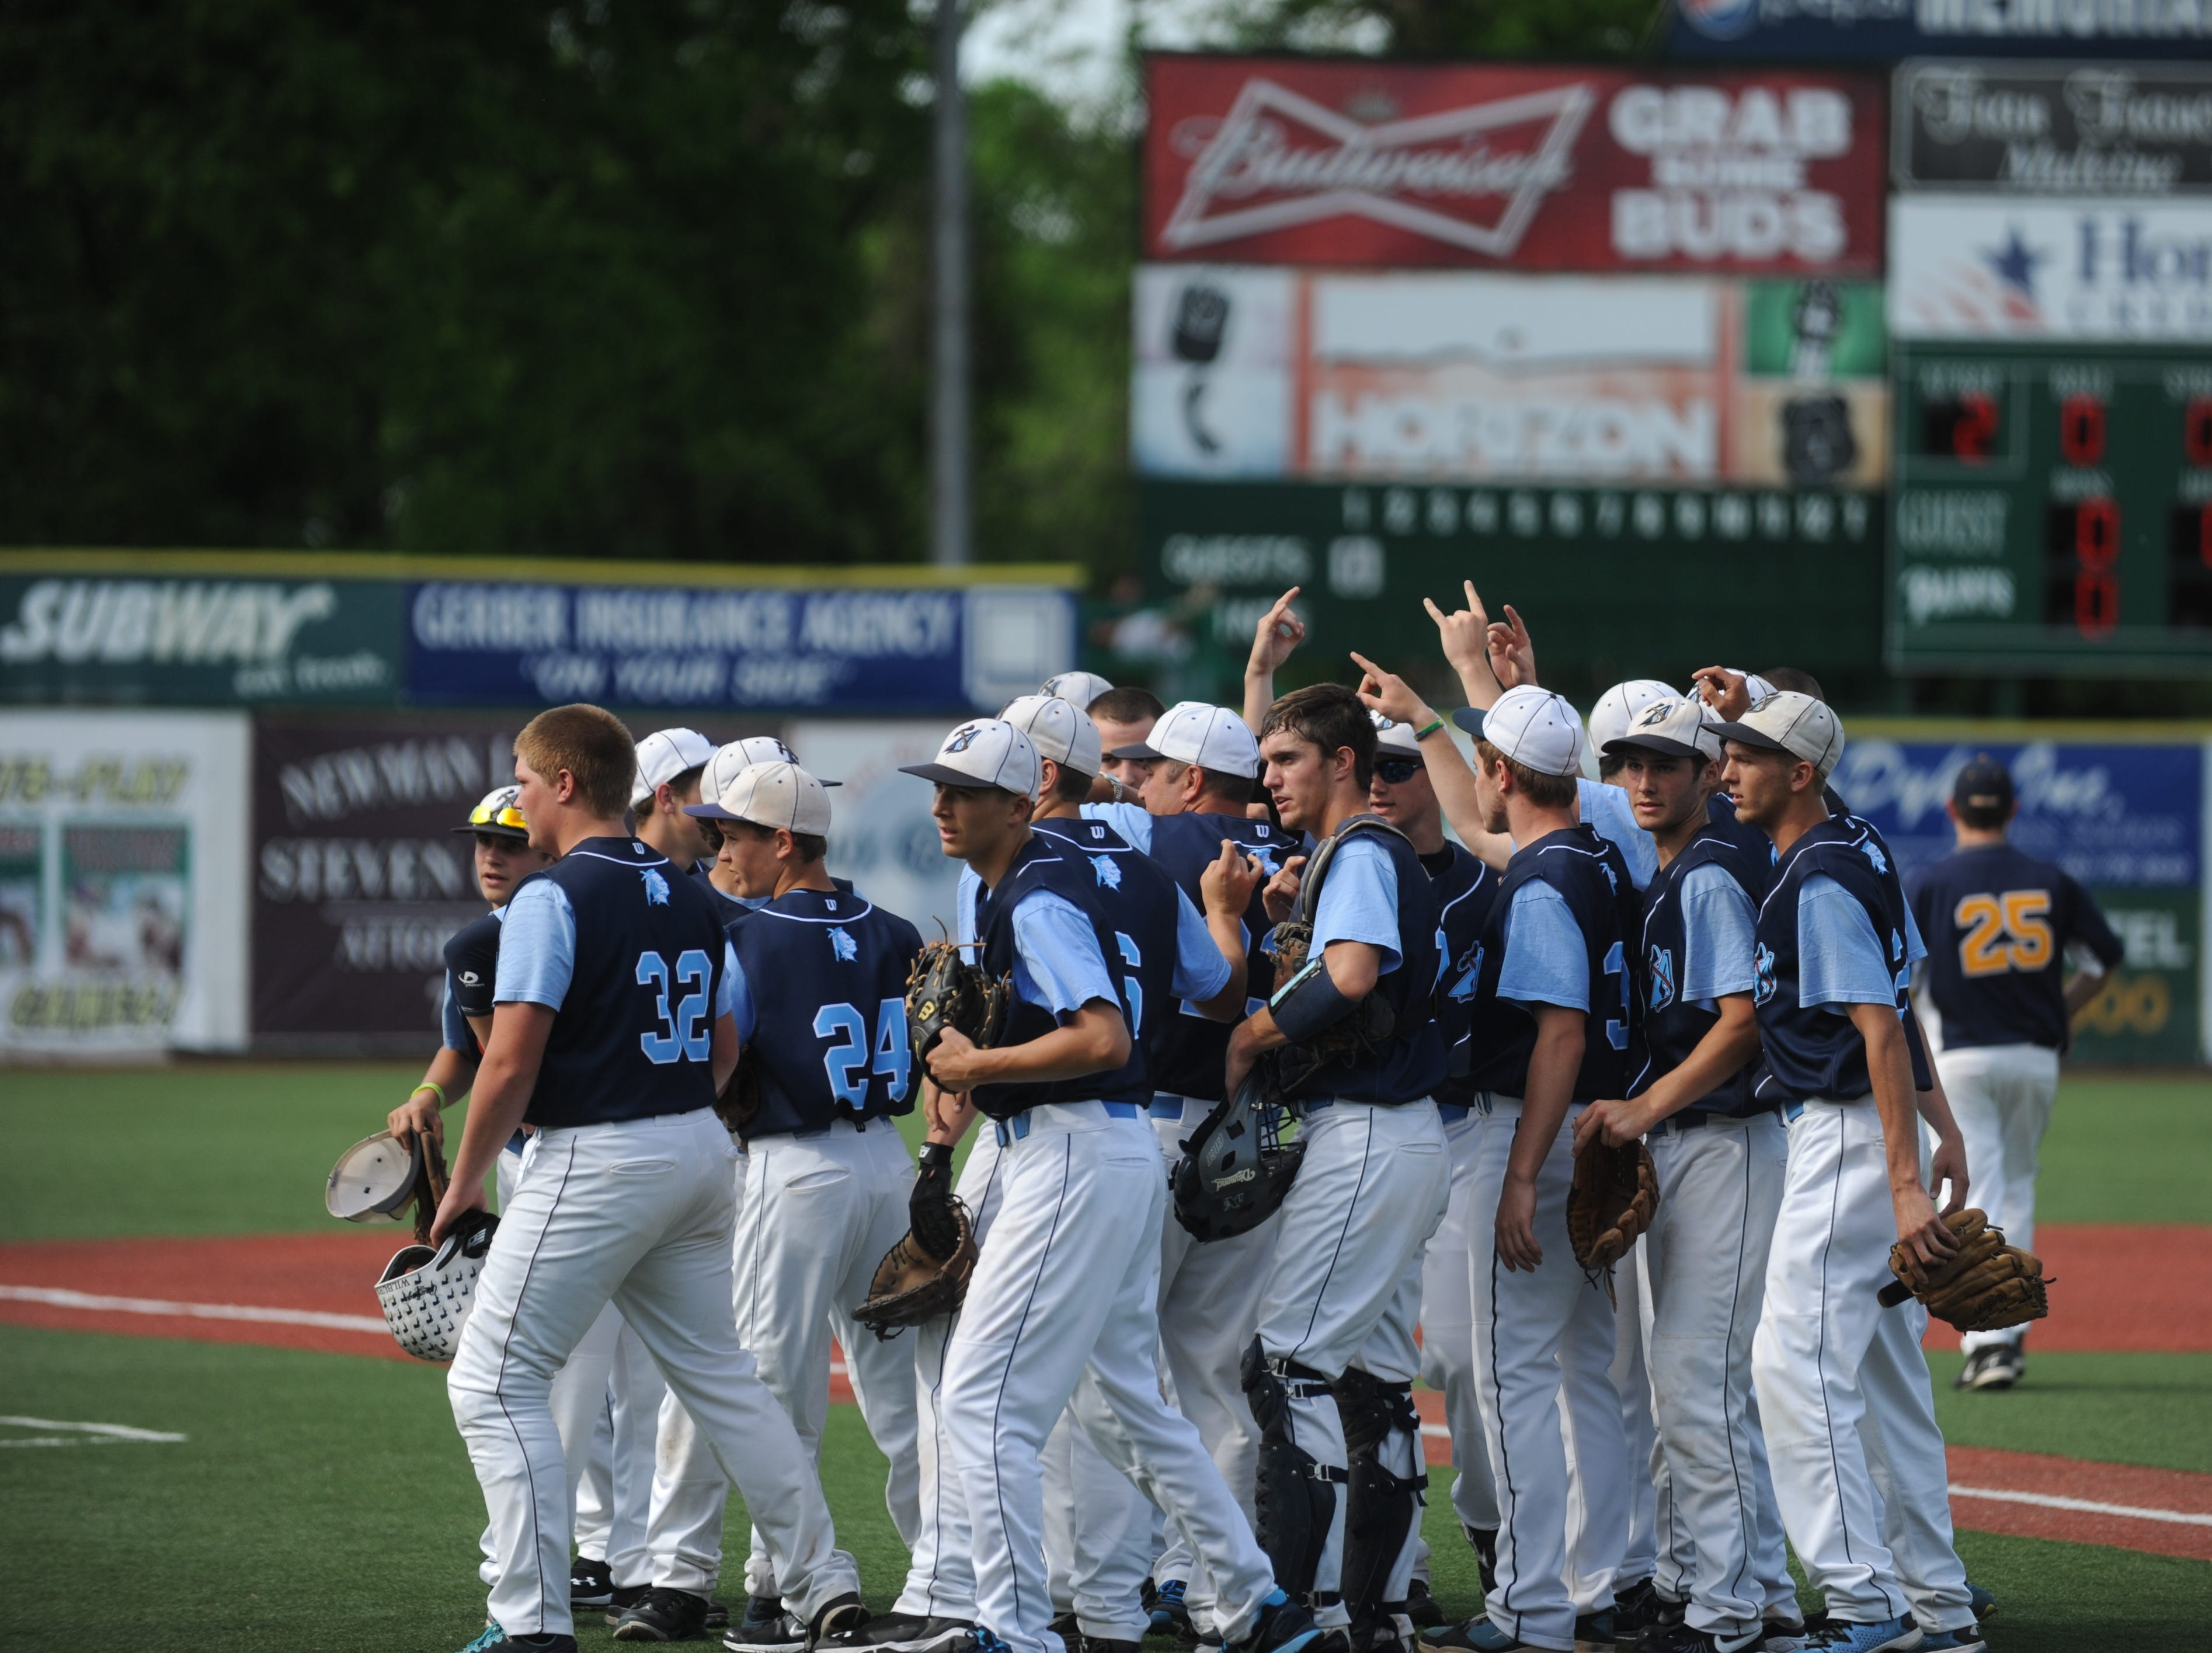 The Adena baseball team celebrate after scoring against South Point High School in a Division III district semifinal at V.A. Memorial stadium on Thursday, May 22, 2014. With a 7-1 win over Southpoint, the Warriors went on to participate in their third straight district final.